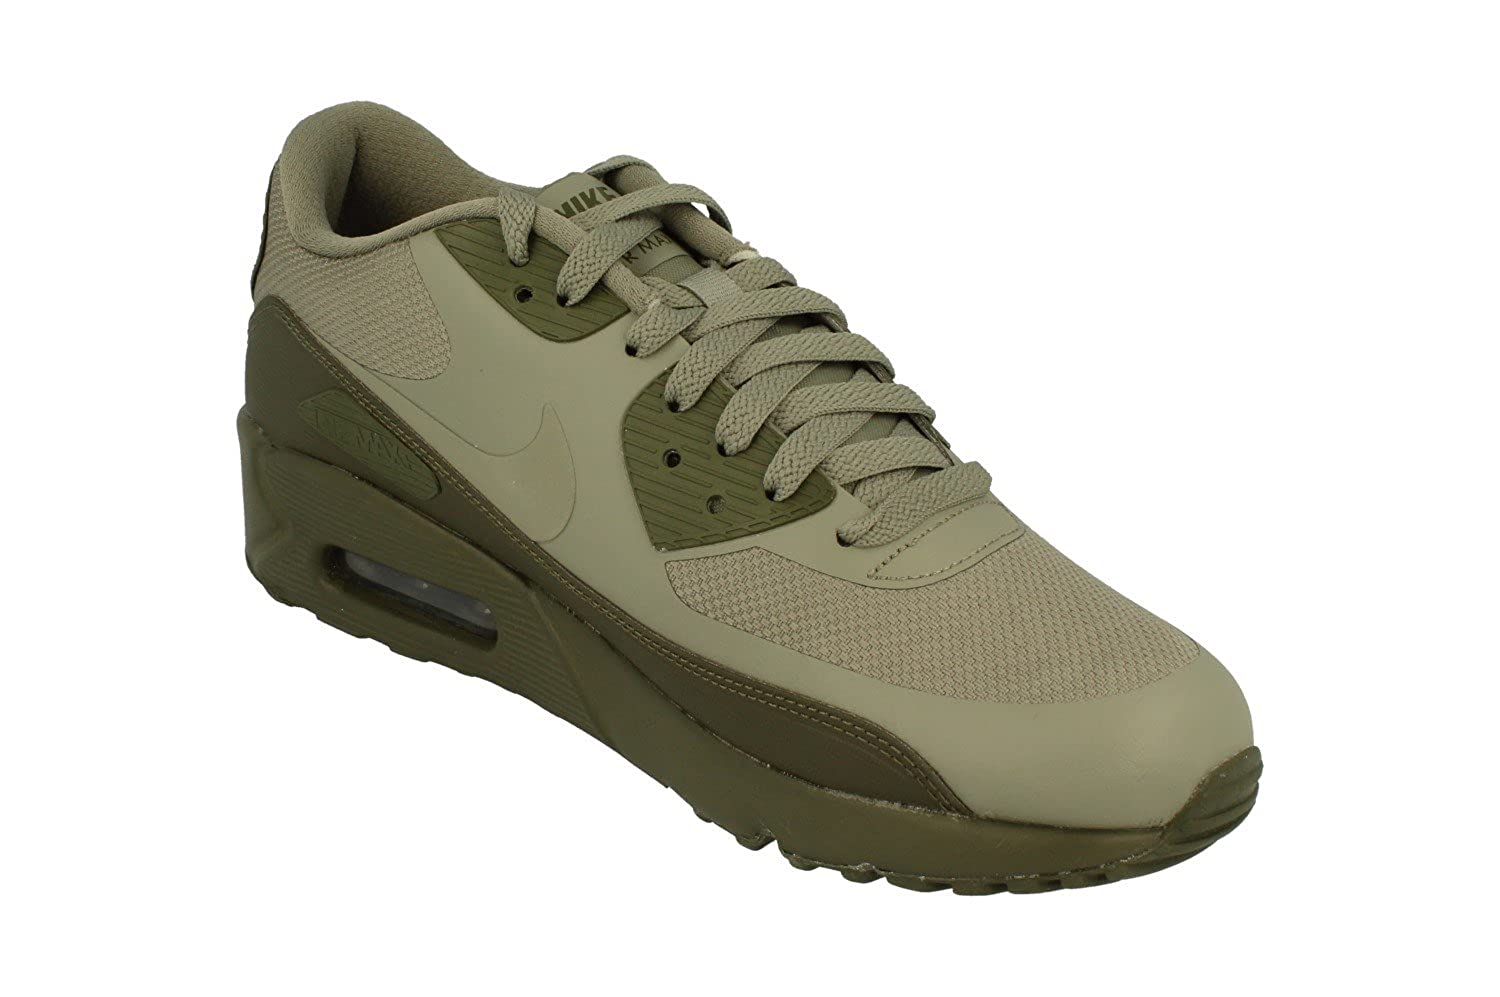 Nike Air Max 90 Ultra 2.0 Commercianti Di Carbone Antracite Essenziale aRmCEtSHlZ